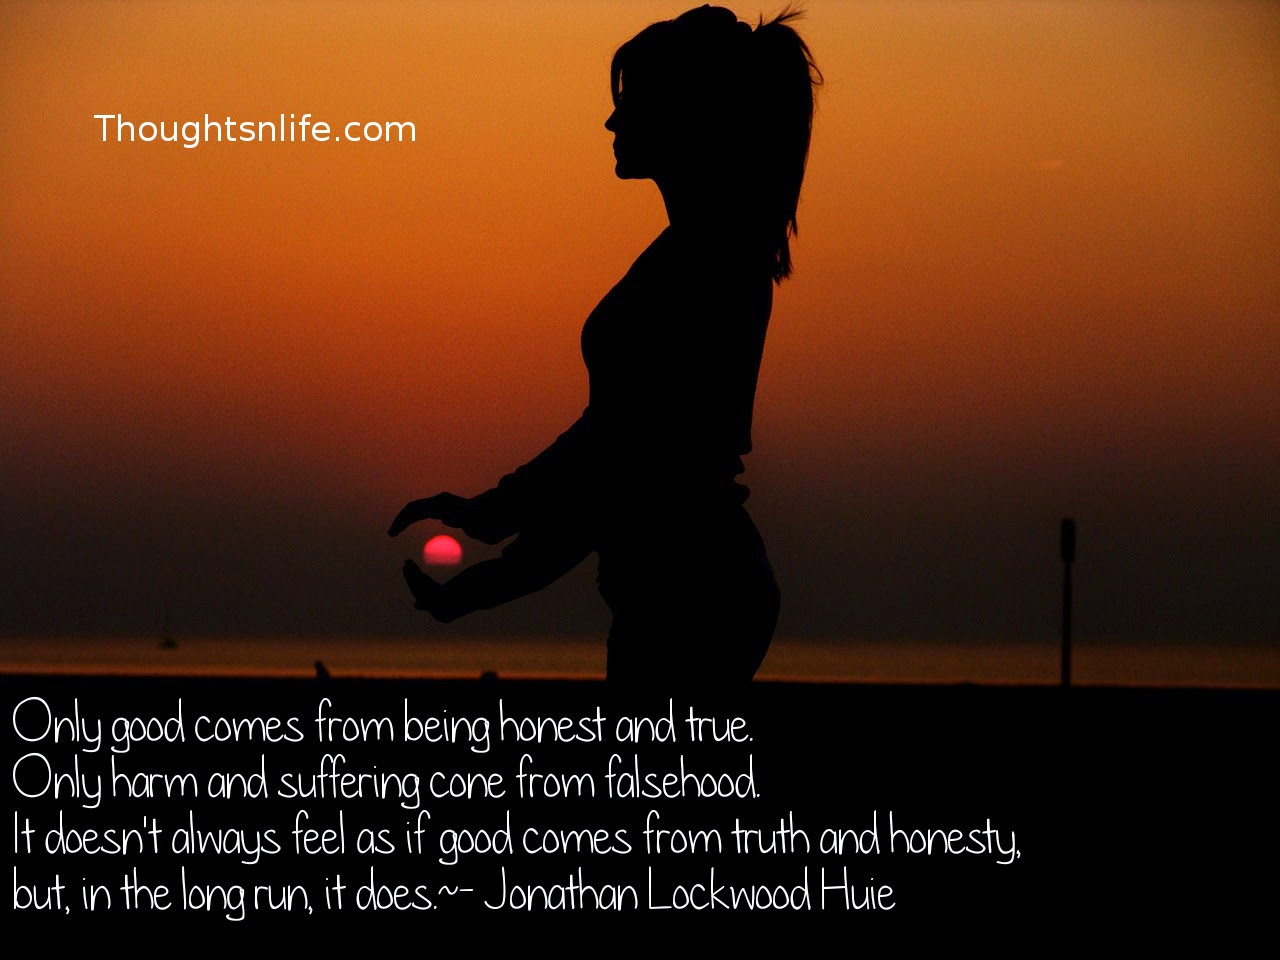 Thoughtsnlife.com: Only good comes from being honest and true. Only harm and suffering cone from falsehood. It doesn't always feel as if good comes from truth and honesty, but, in the long run, it does. - Jonathan Lockwood Huie